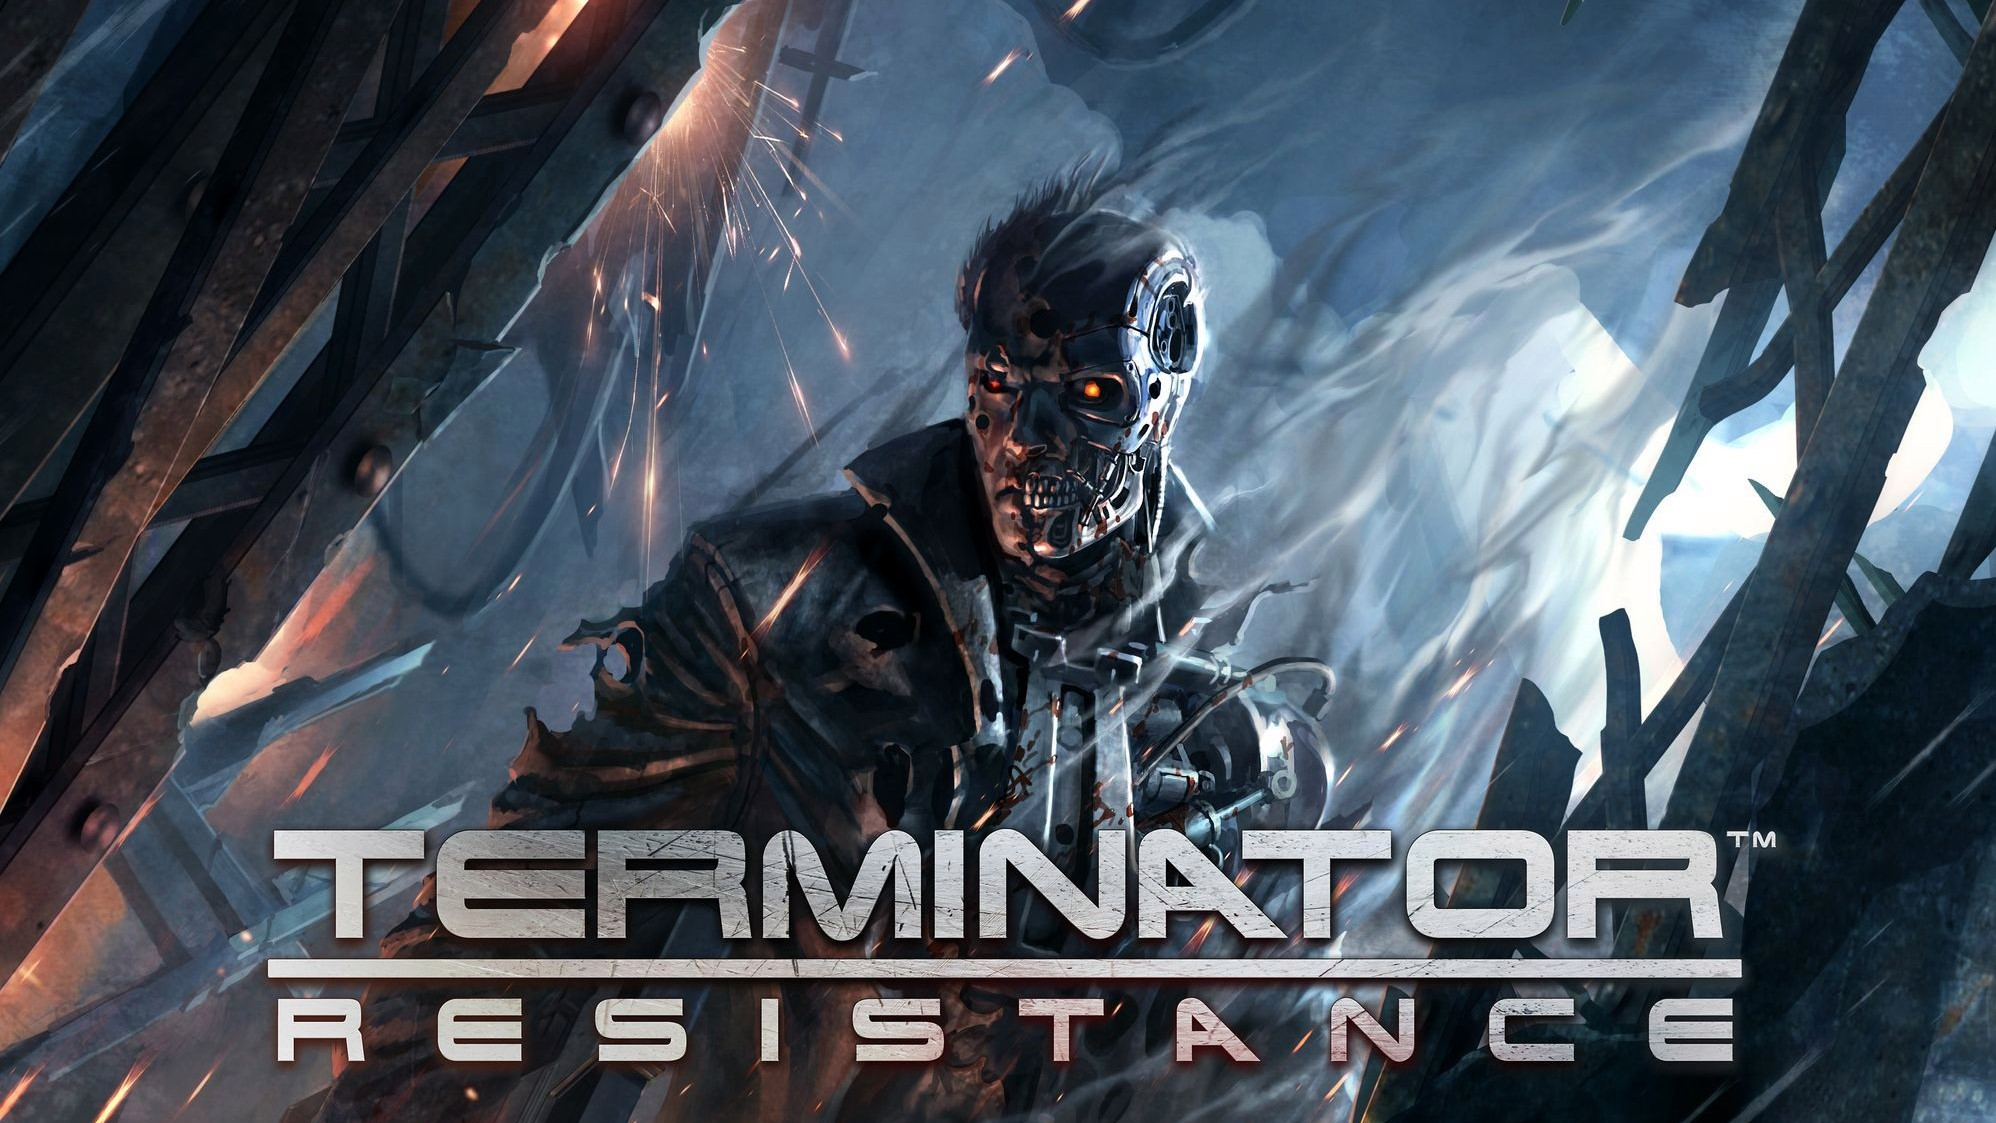 Terminator Resistance Announced By Reef Entertainment; Take The Fight To The Machines Later This Year